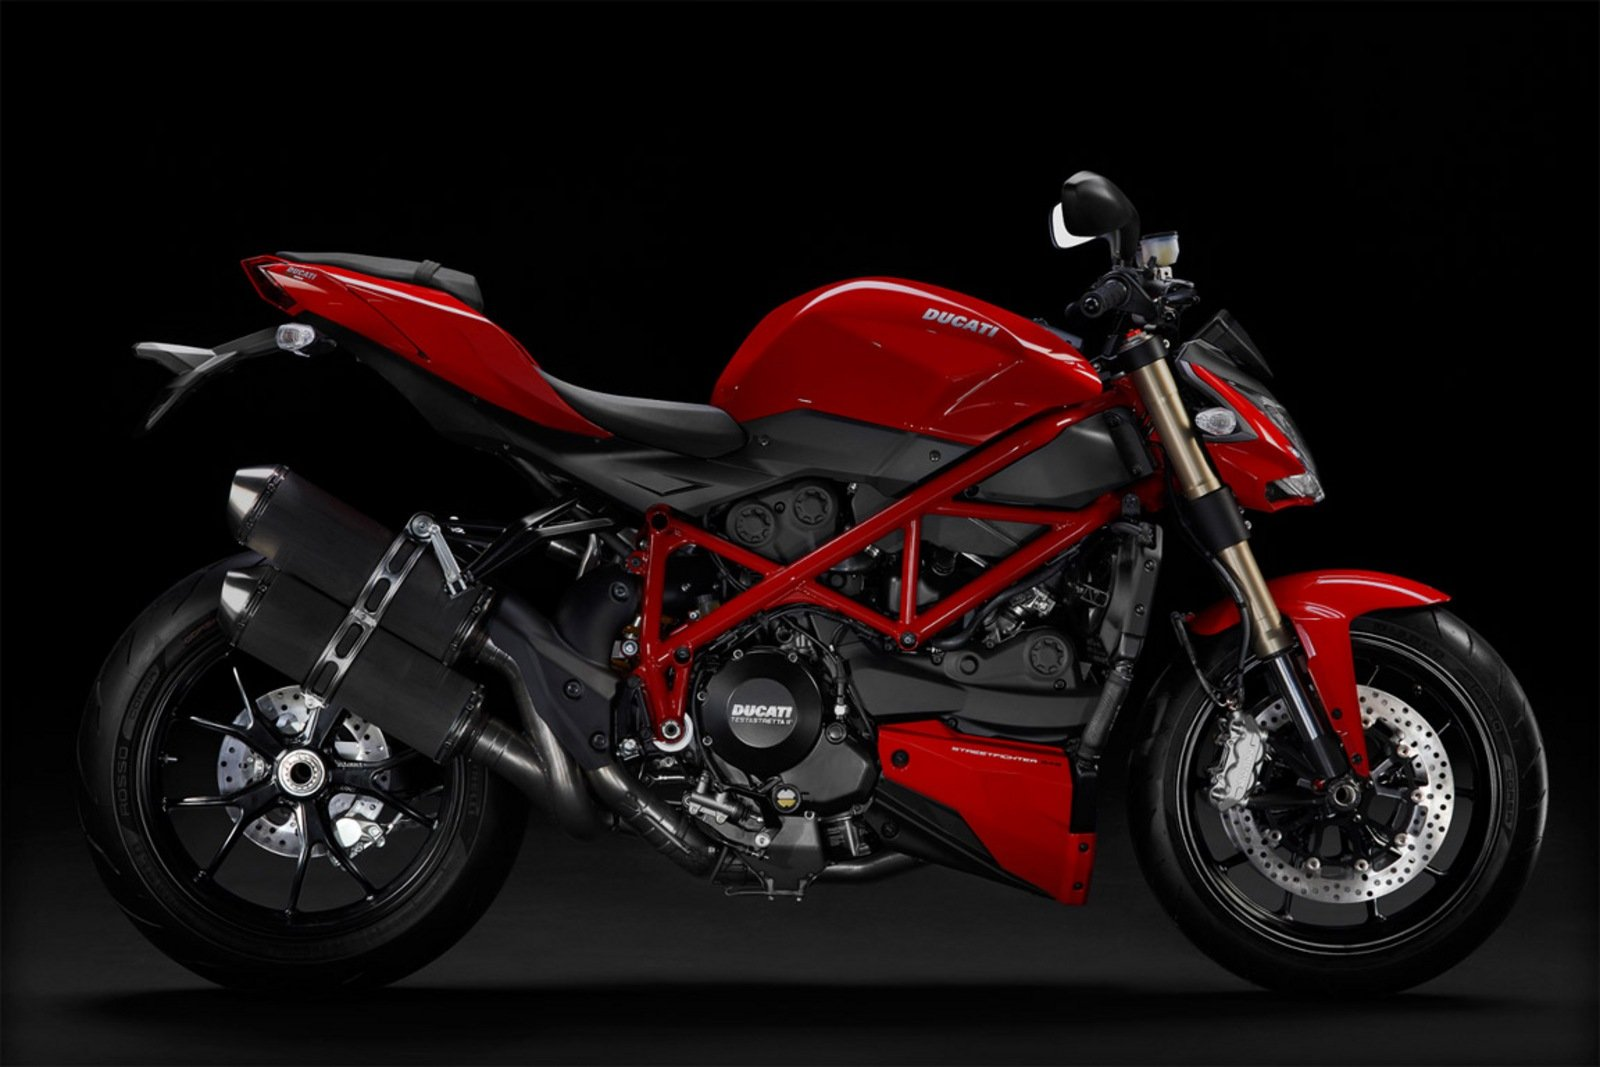 Ducati 848 News And Reviews | Top Speed